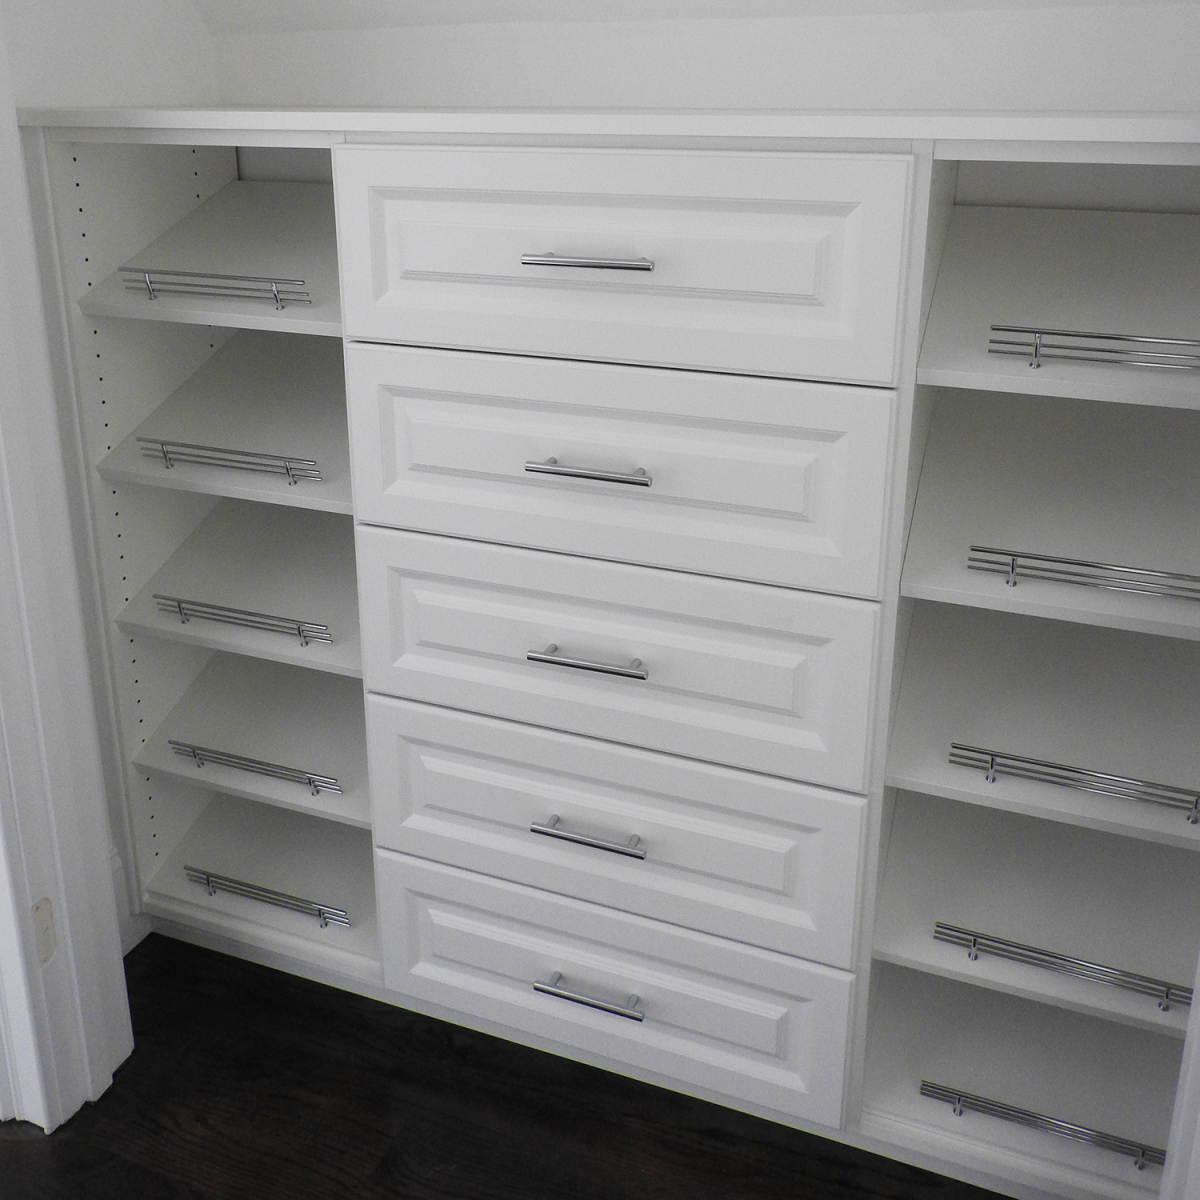 Walk-In-Closets-New-Drawers